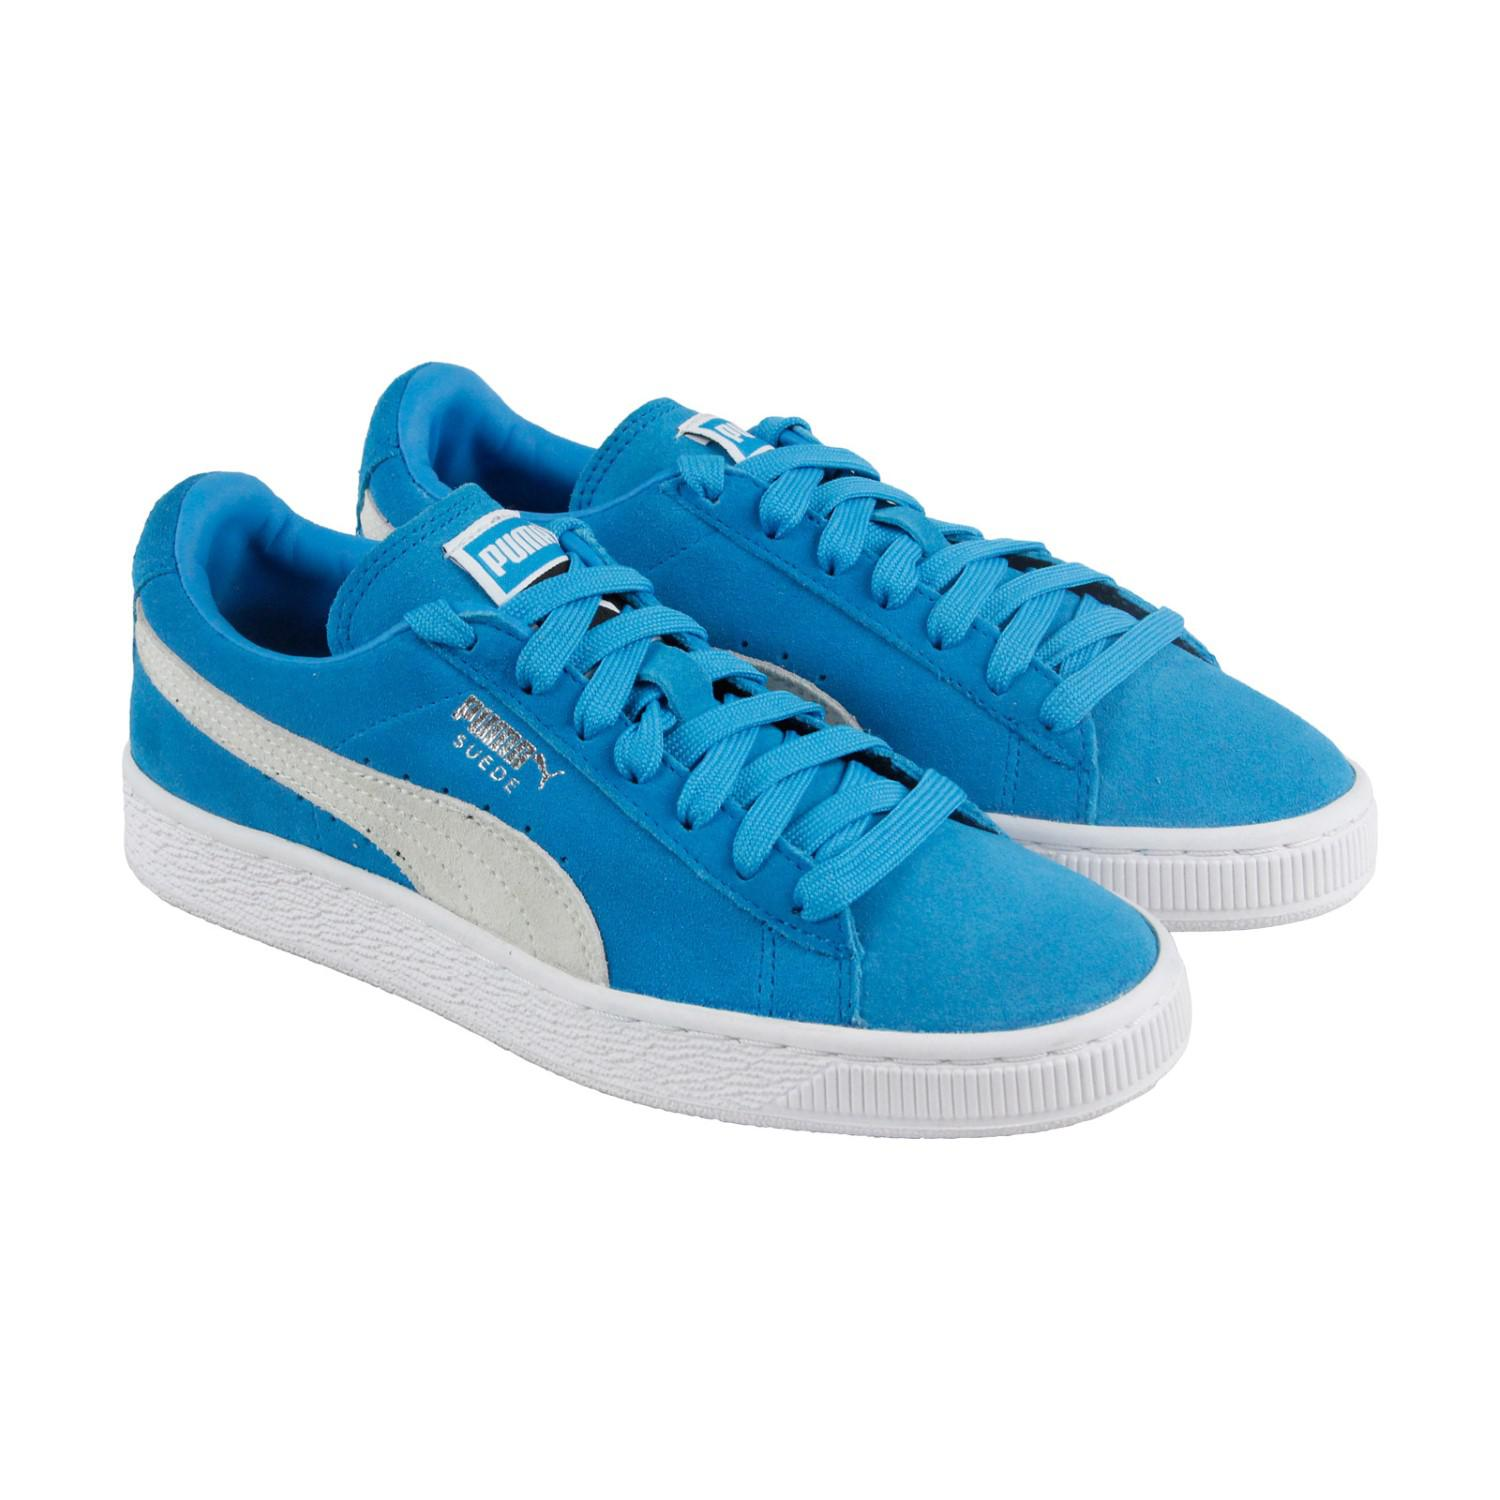 c2b40ef183d PUMA Suede Classic + Blue Danube White Lace Up Sneakers in Blue for ...